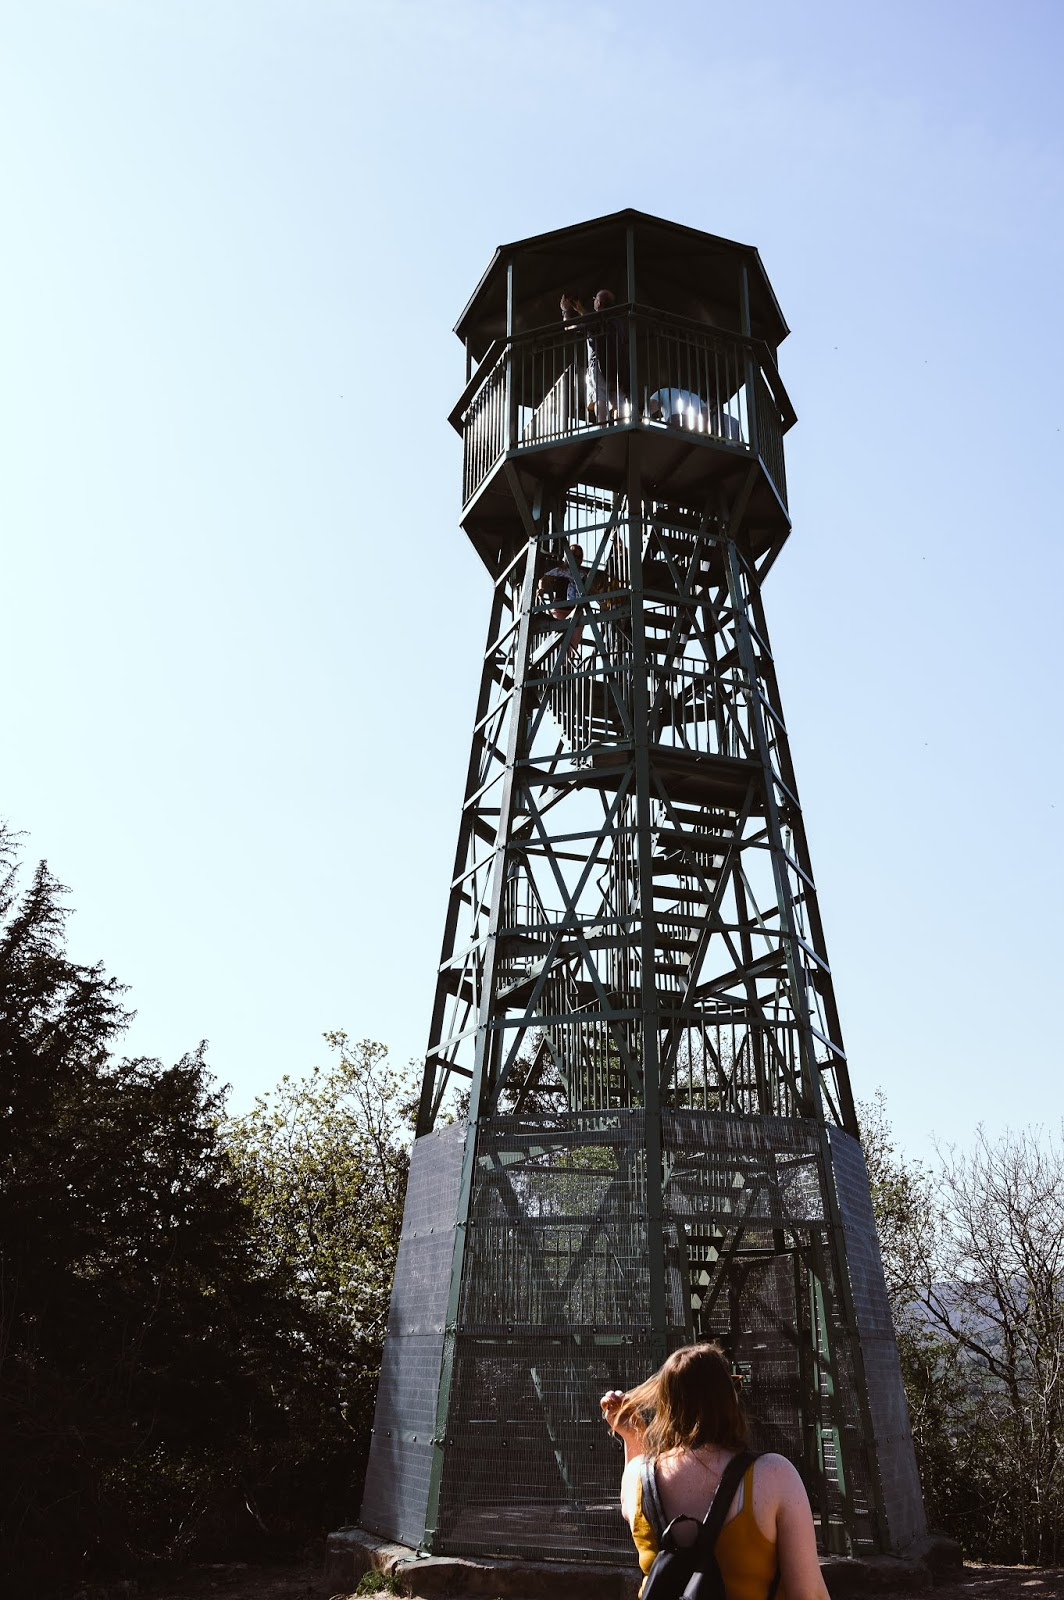 Lookout Tower at Cheddar